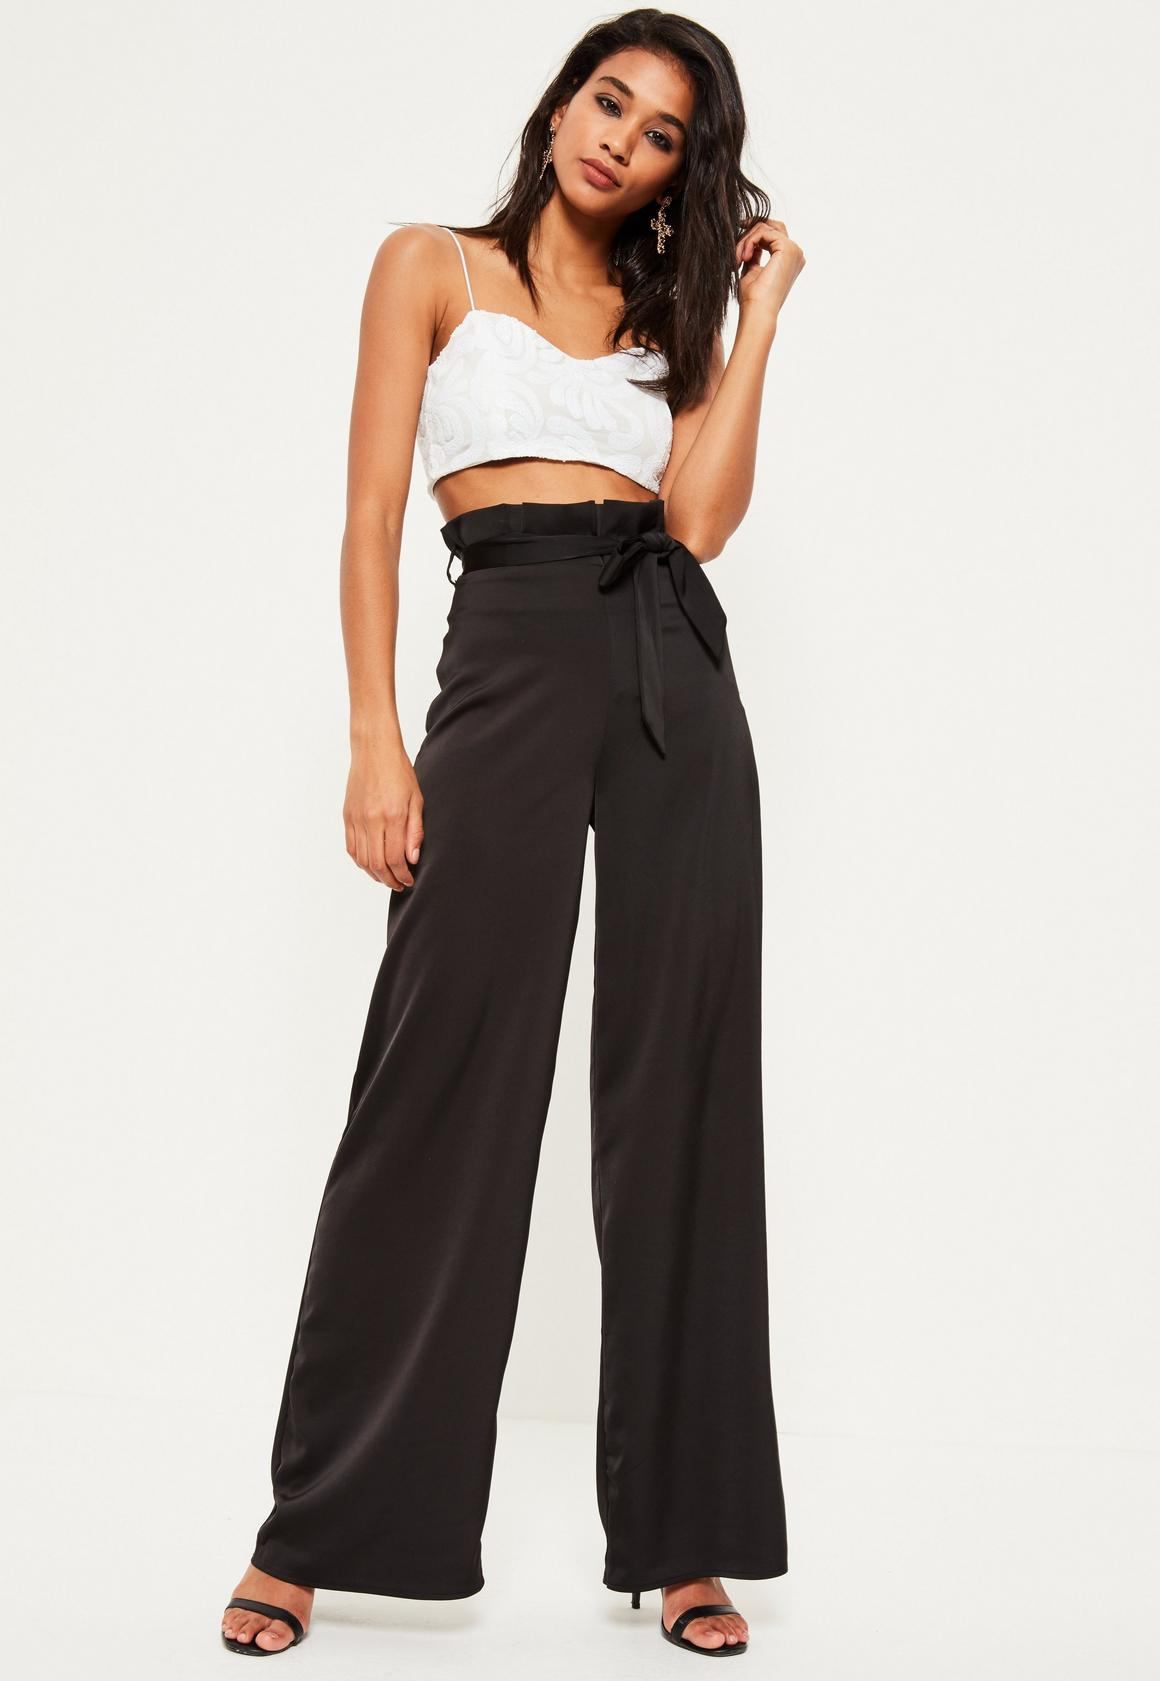 Paper bag trousers - Black Super High Waist Paperbag Trousers